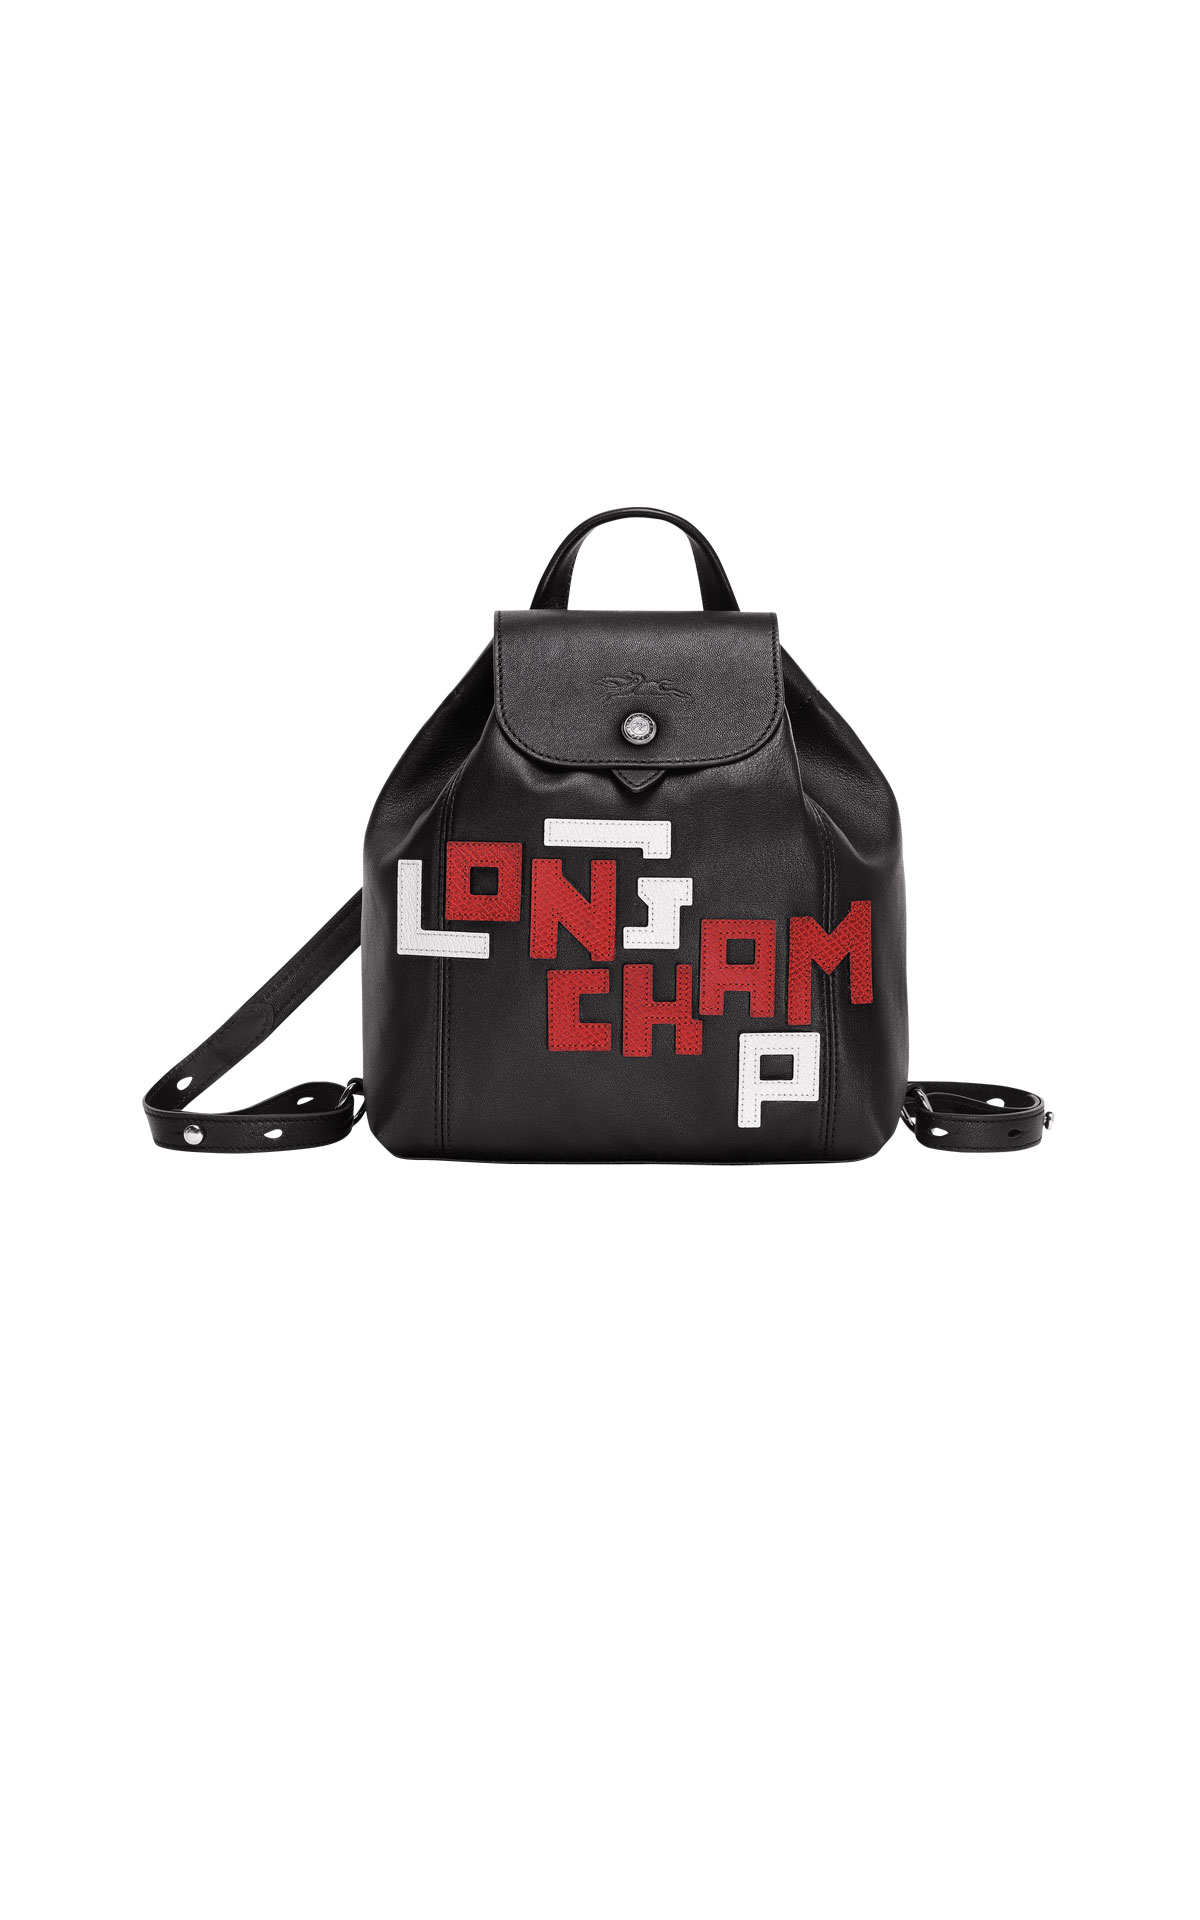 Black leather backpack with red letters Longchamp